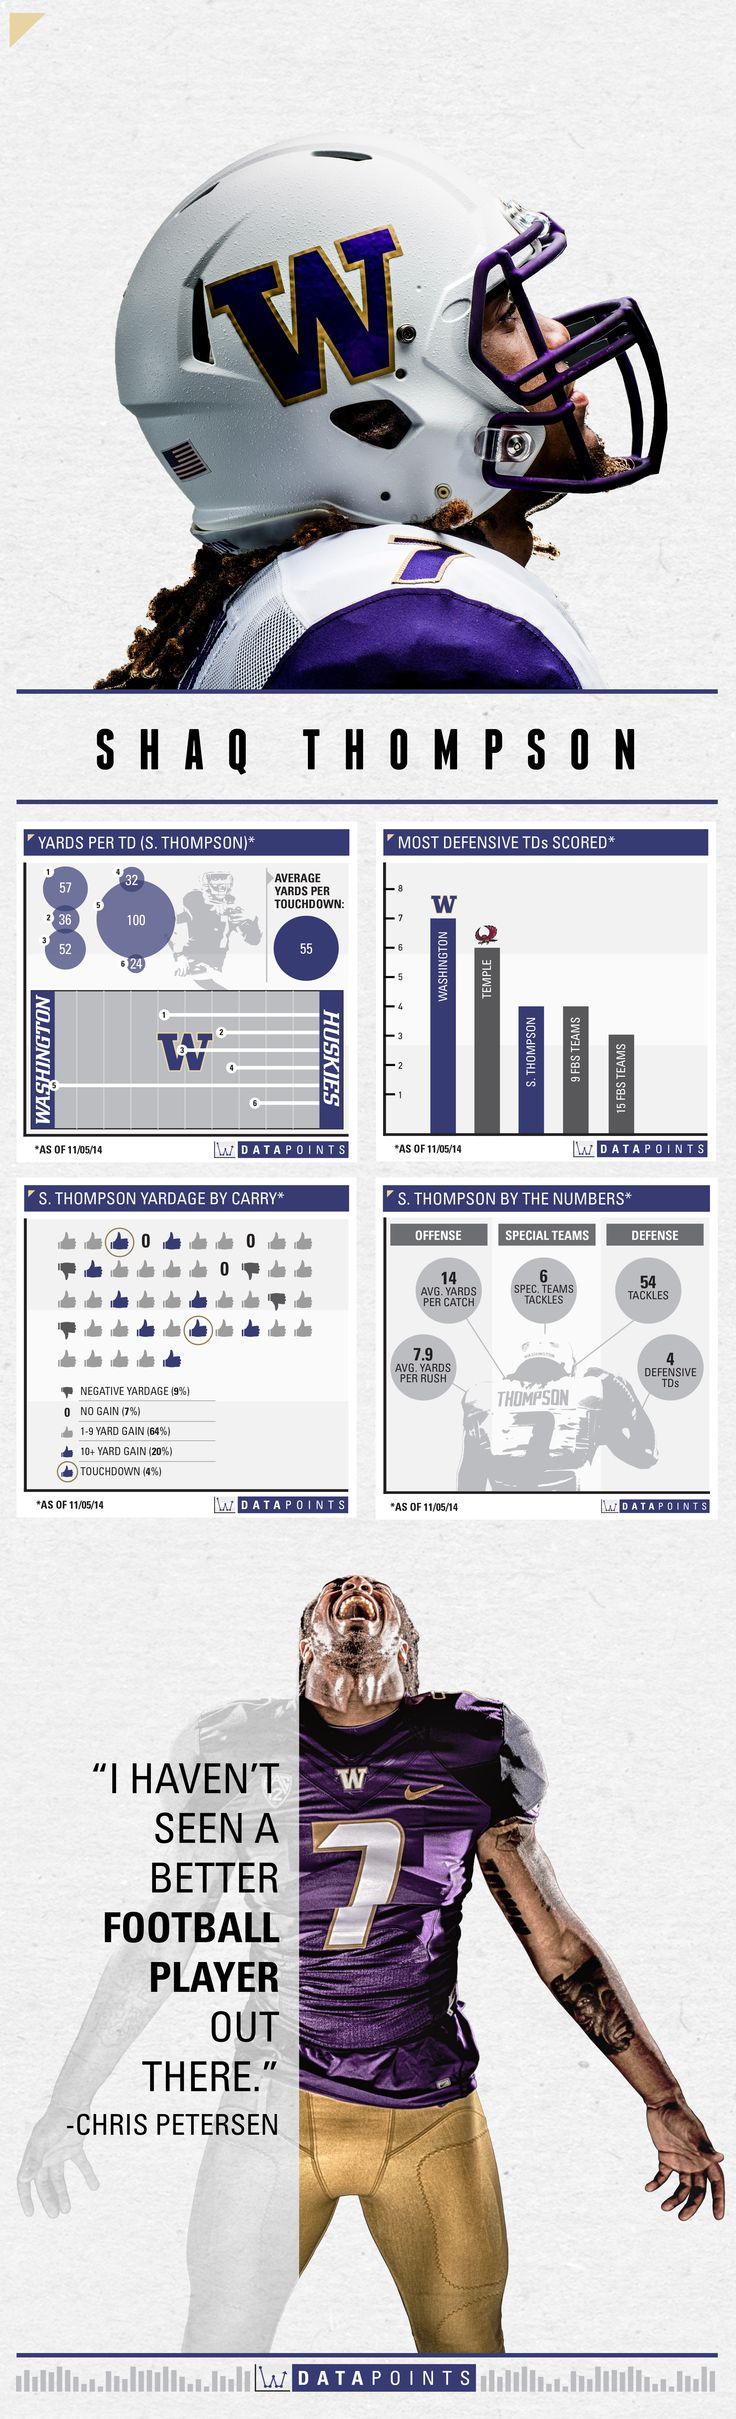 Shaq Thompson: Everything Is For Mom | 11/5/14 #UWDataPoints